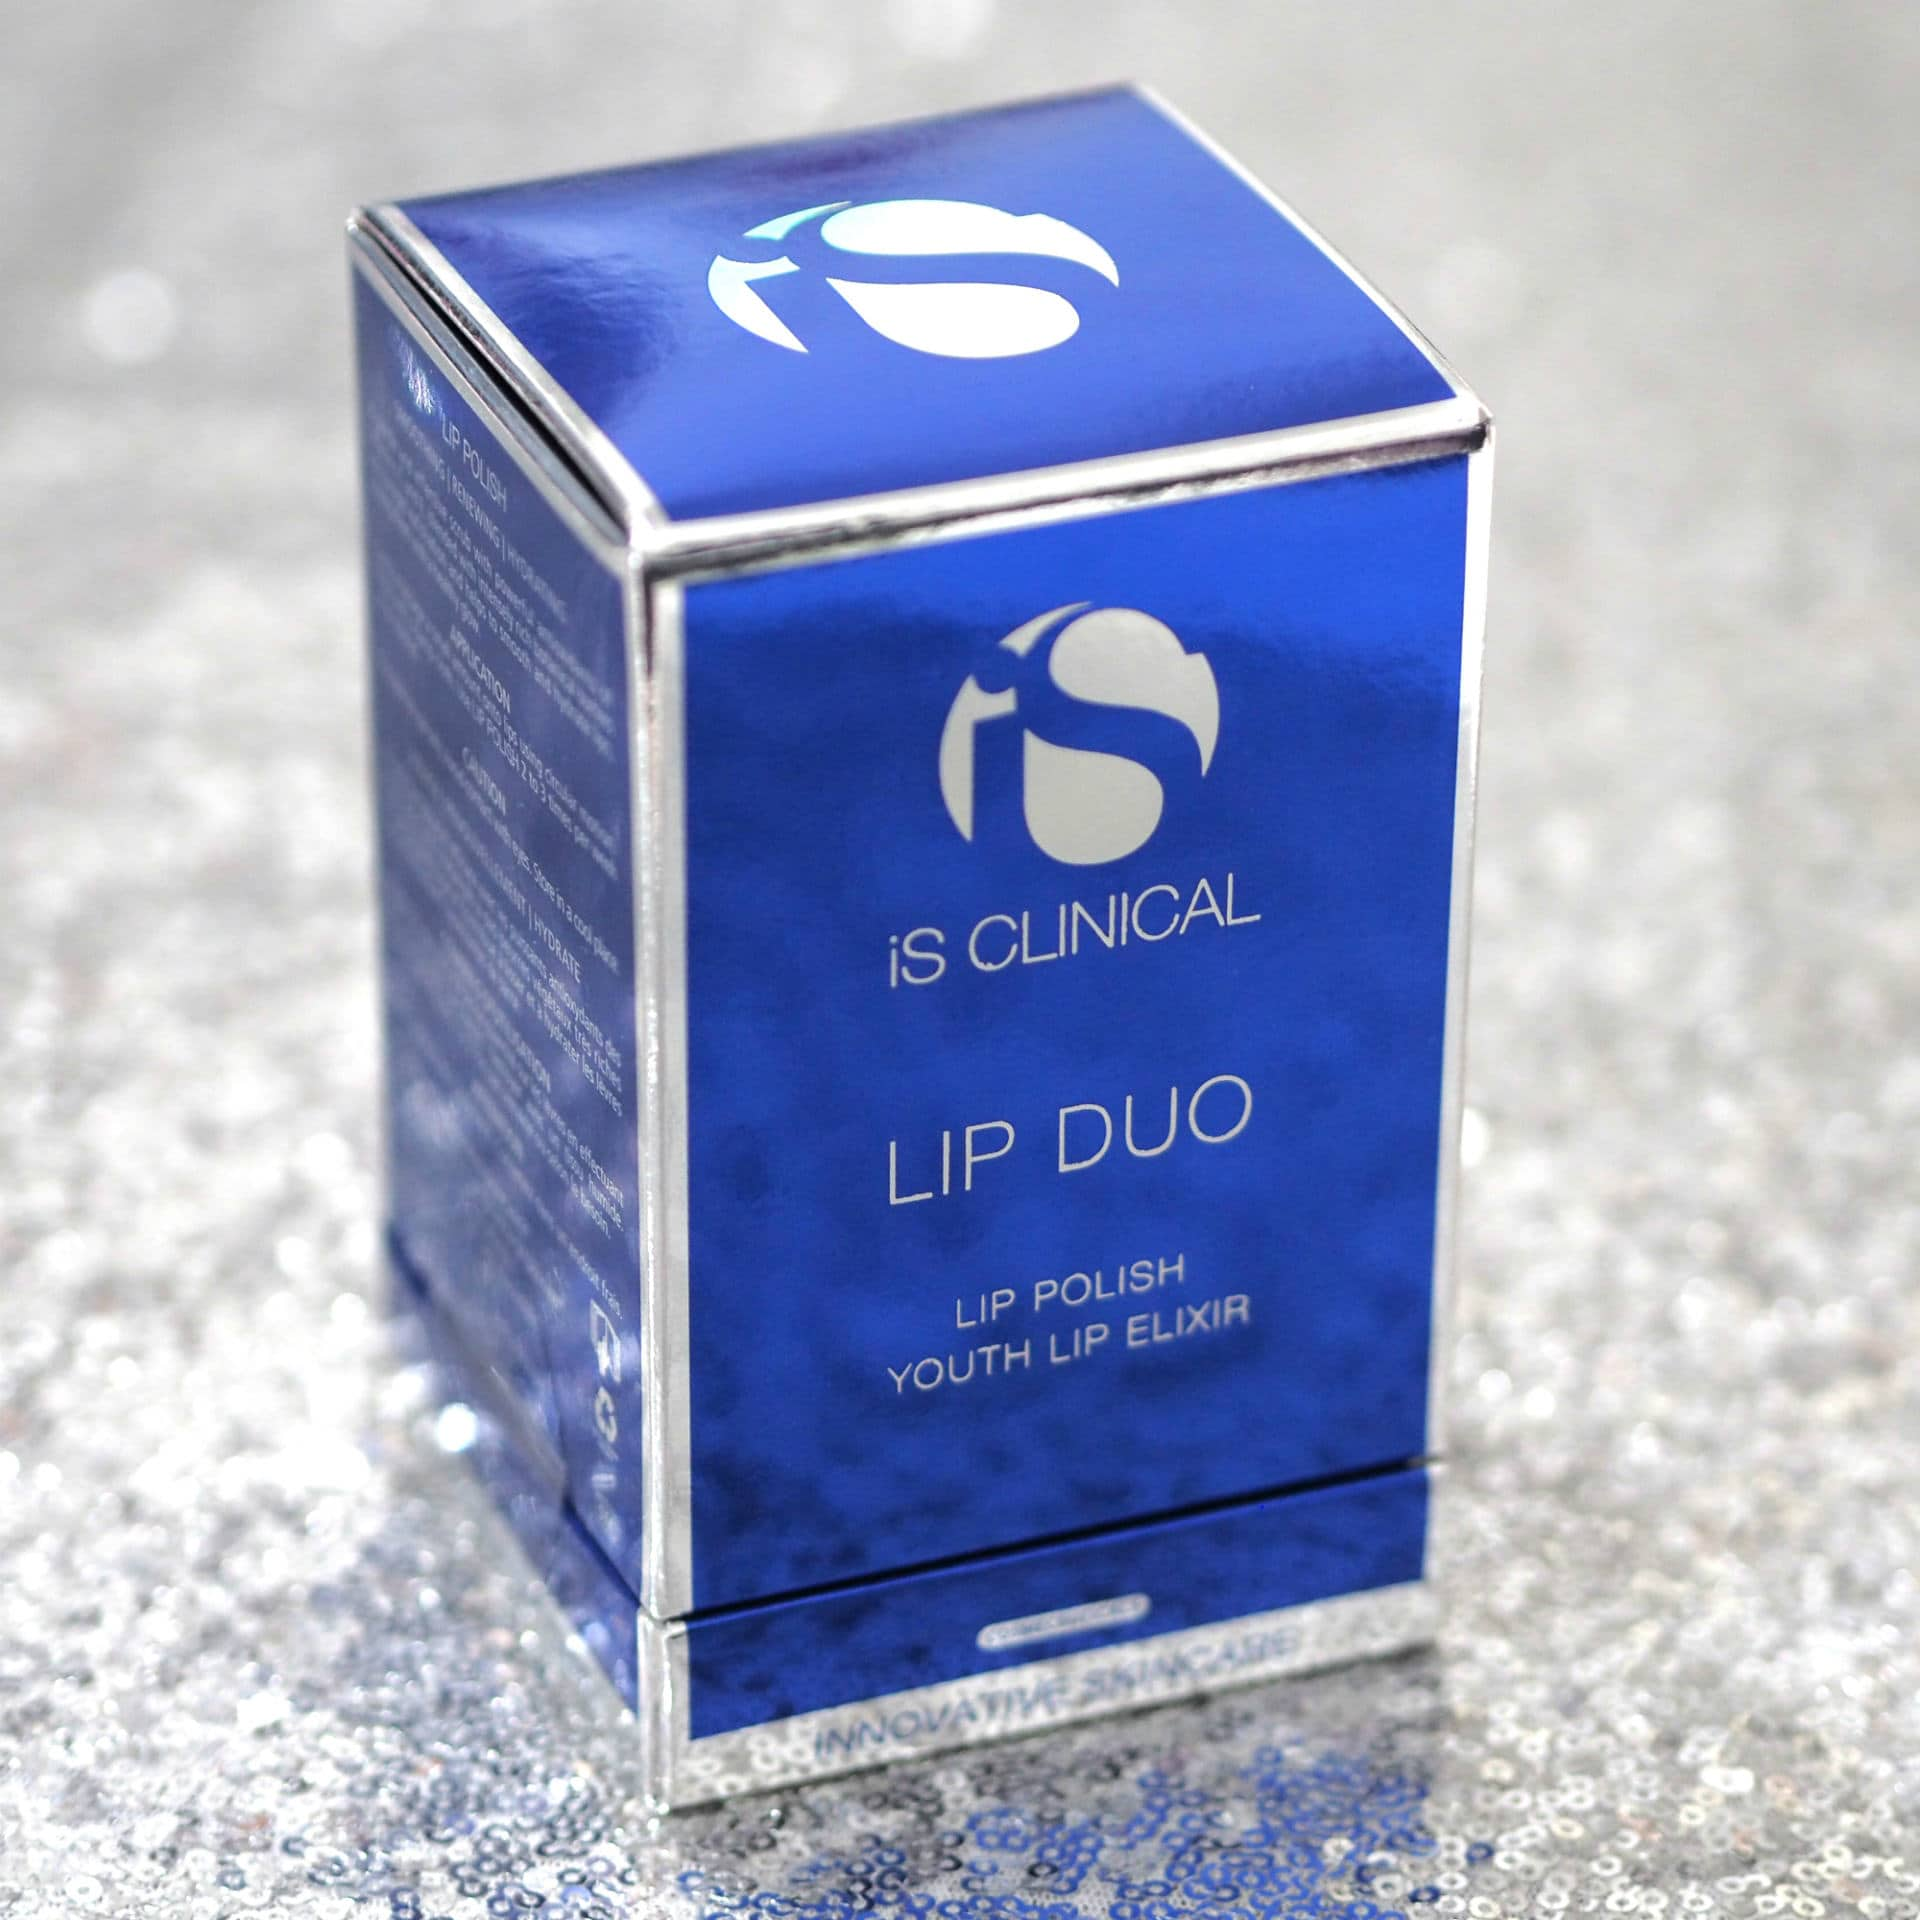 iS CLINICAL Lip Duo Gift Set ft iS CLINICAL Lip Polish and iS CLINICAL Lip Elixir